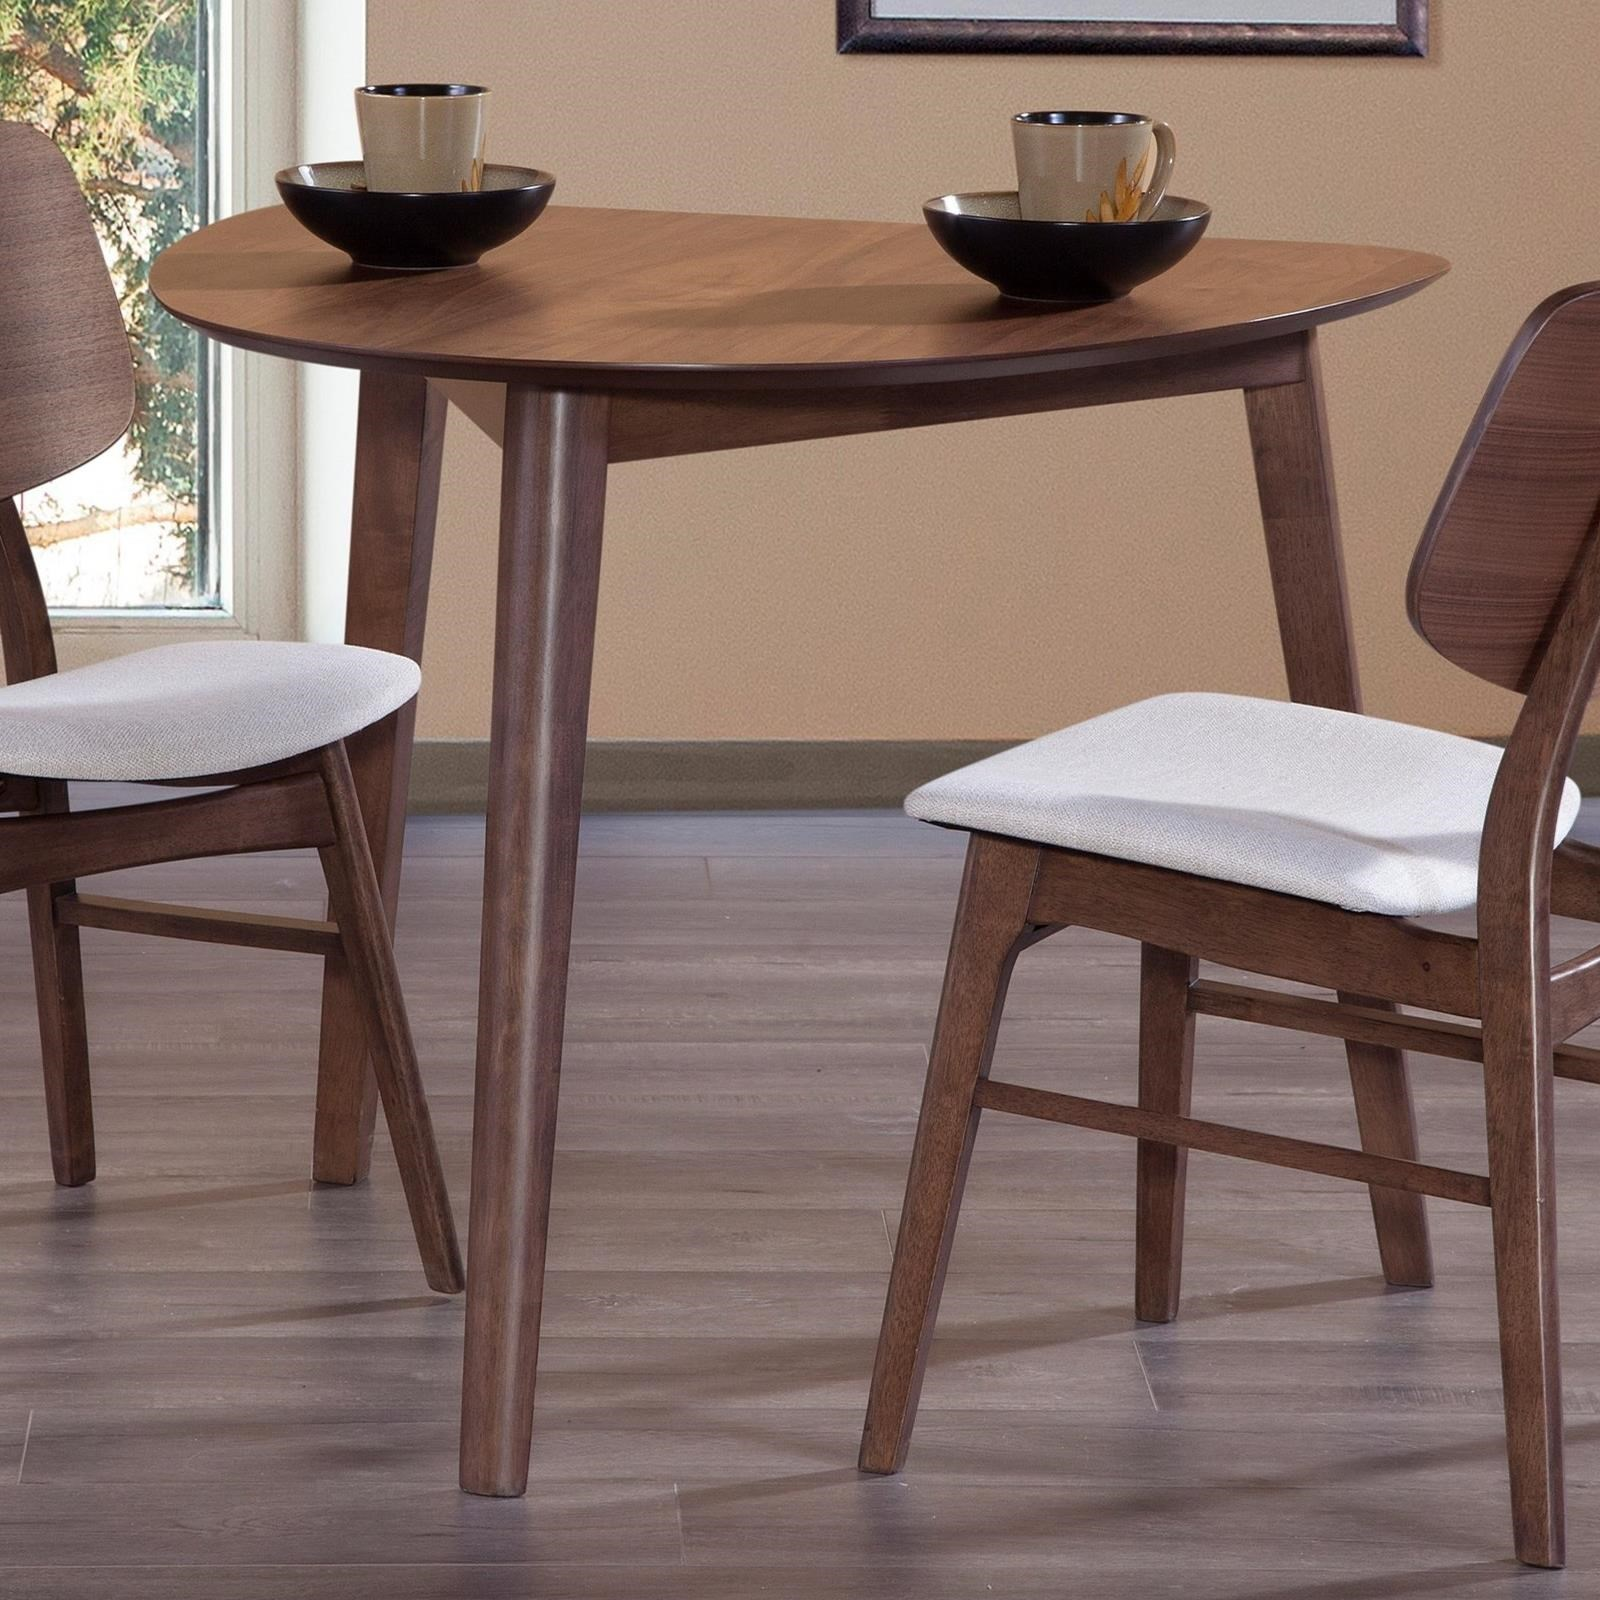 Oscar Corner Table by New Classic at Beck's Furniture